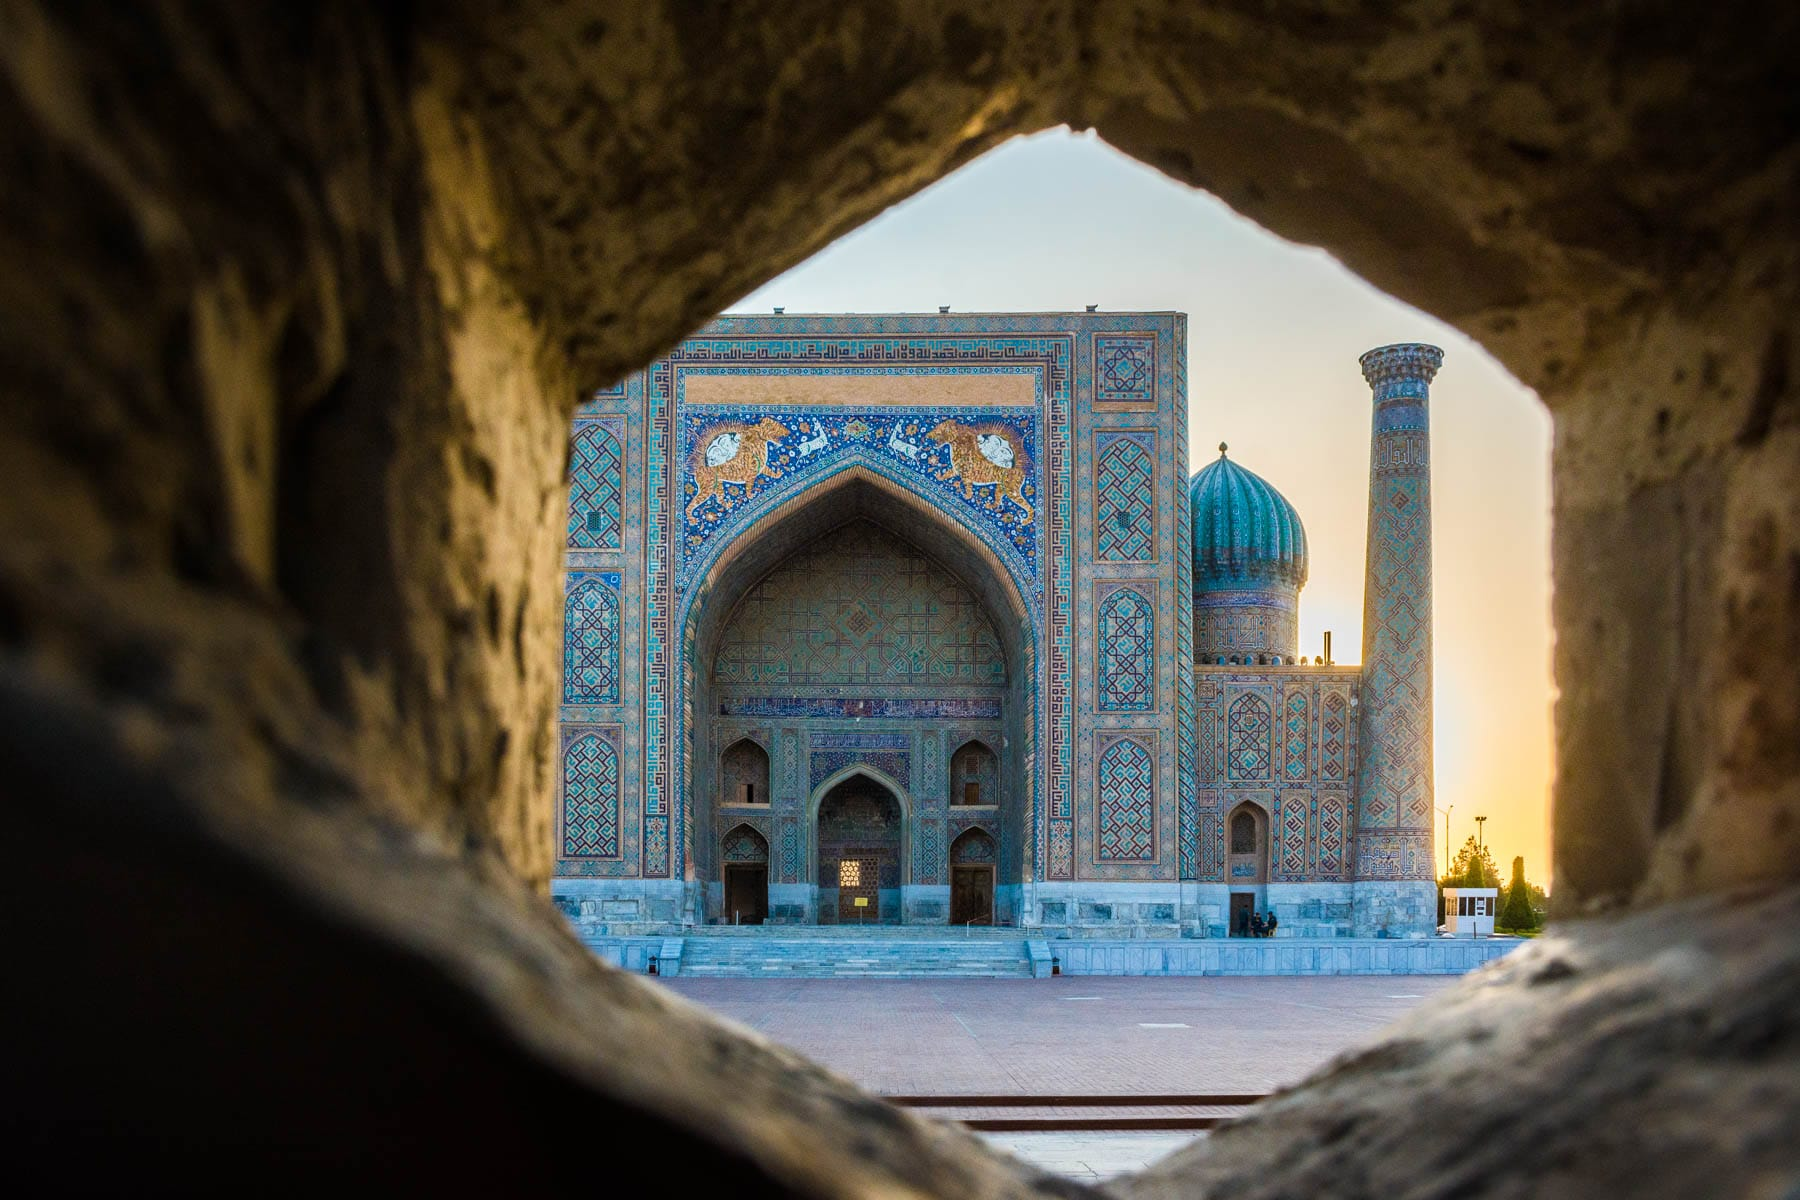 Sunrise at the Registan in Samarkand, Uzbekistan